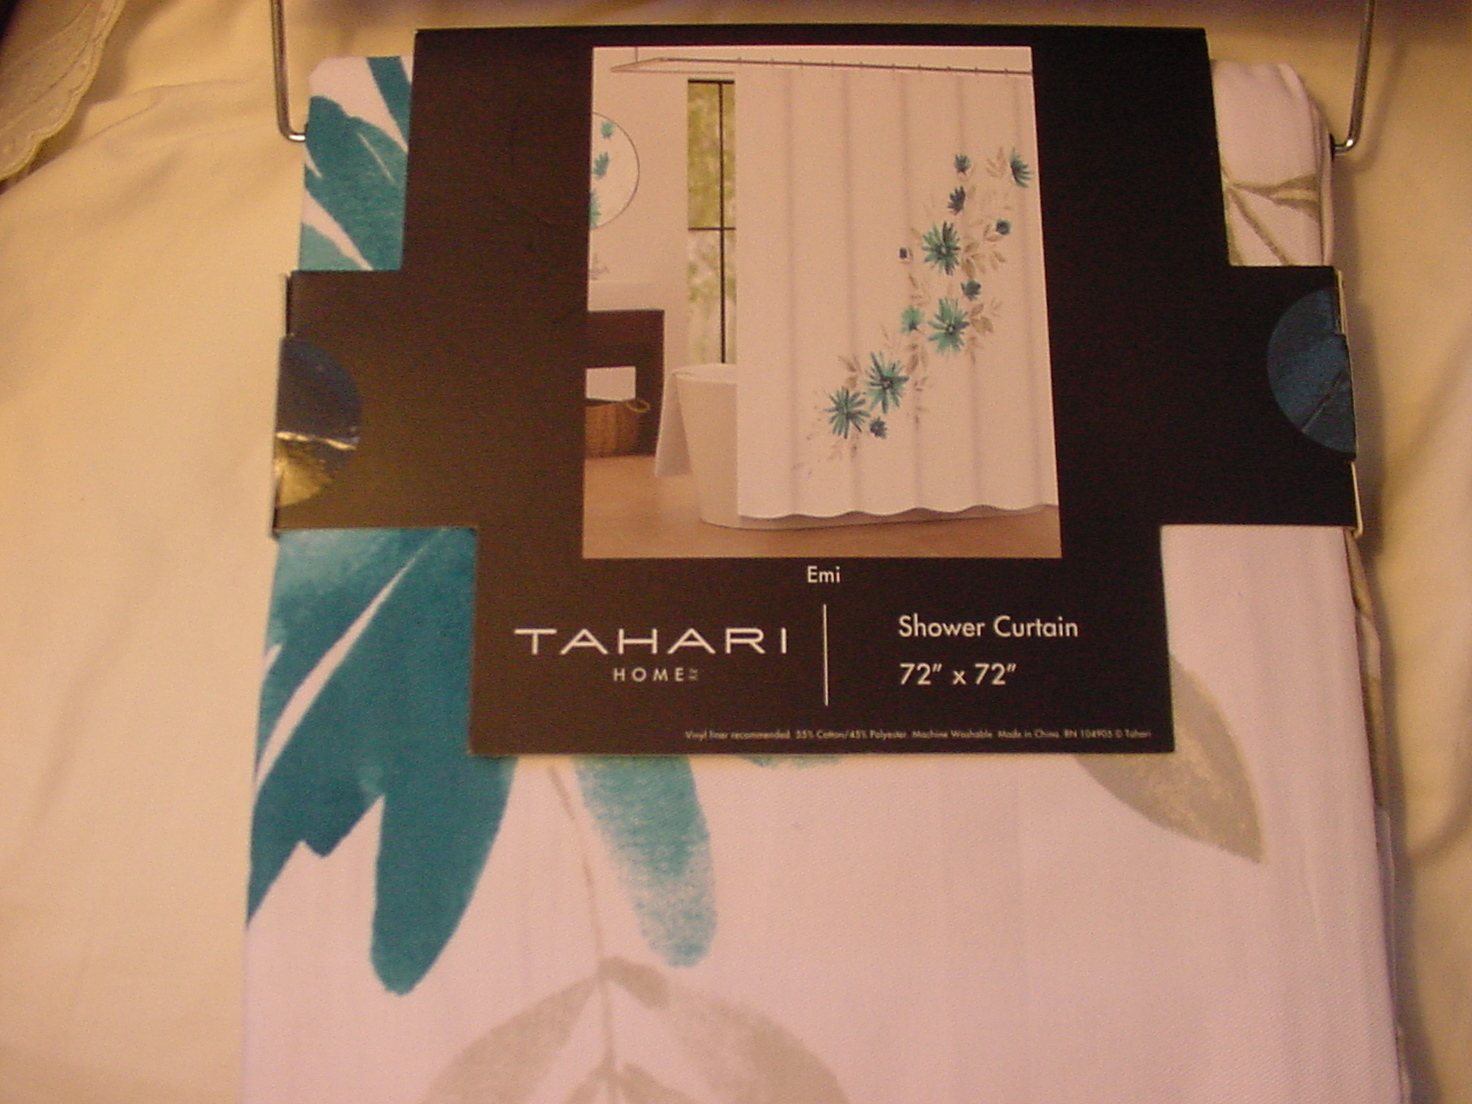 Tahari Emi Turquoise and Gray Floral on White Shower Curtain